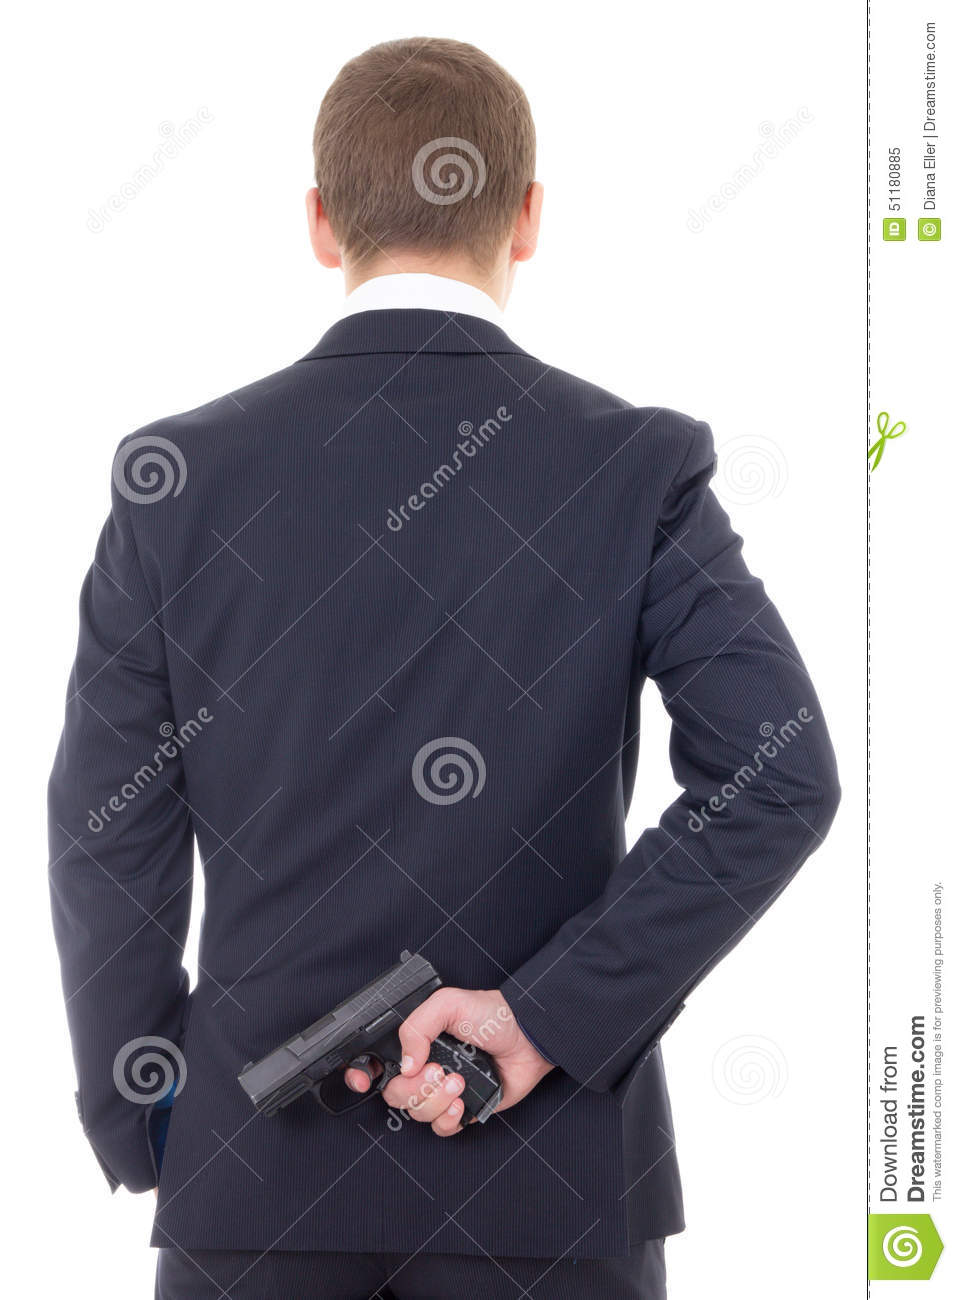 Man In Business Suit Hiding Gun Behind His Back Isolated